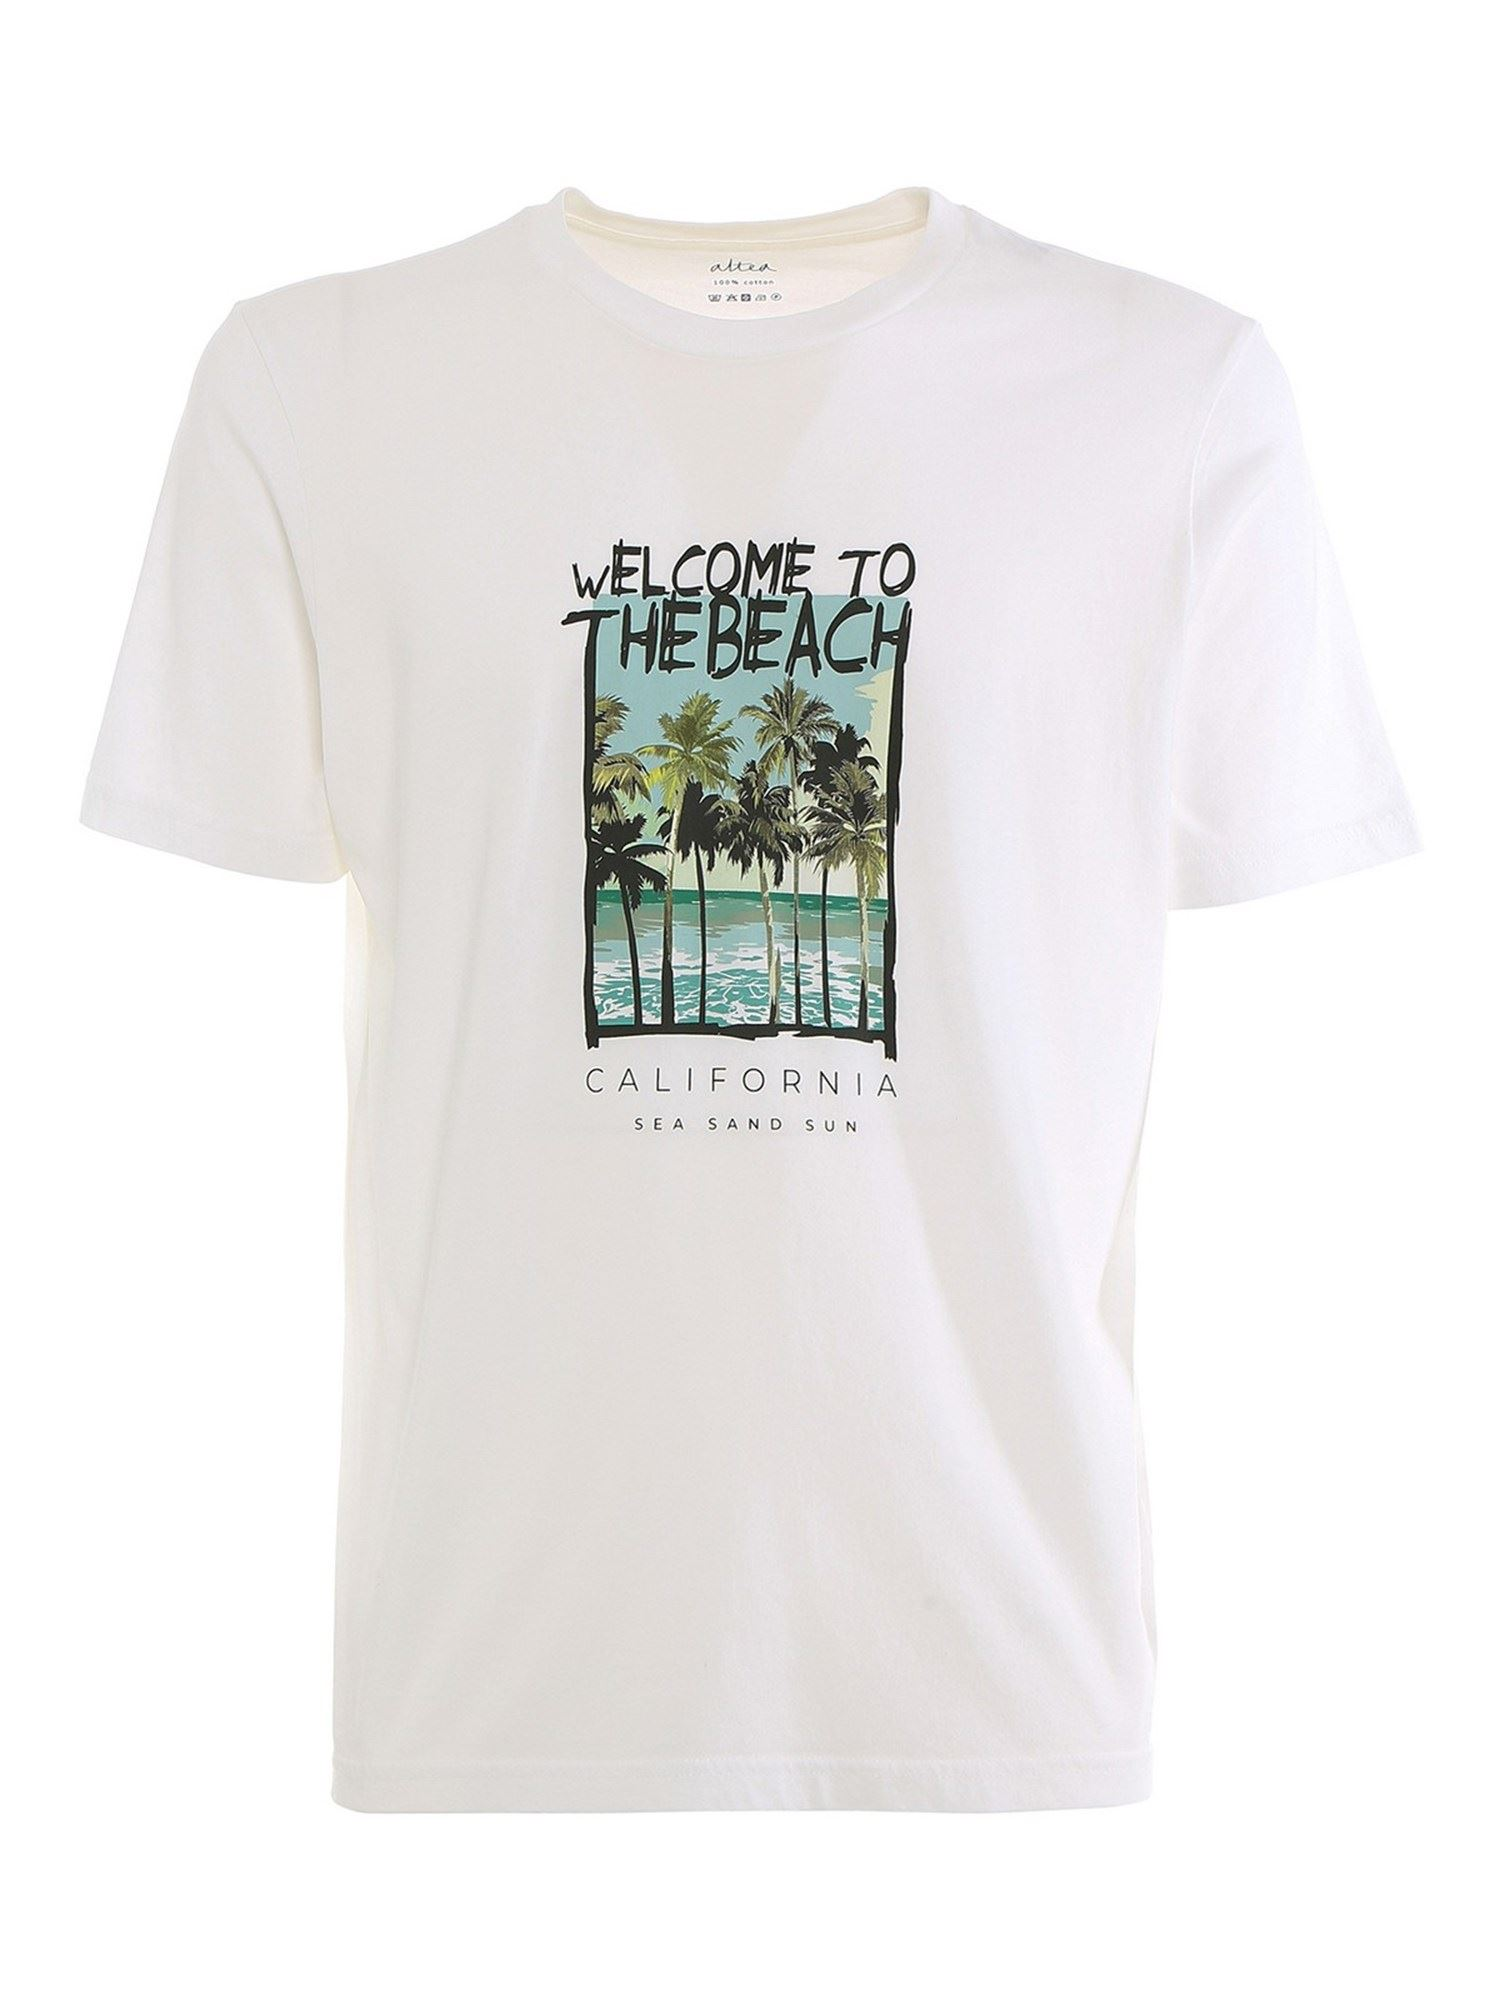 Altea Cottons LEWIS T-SHIRT IN WHITE